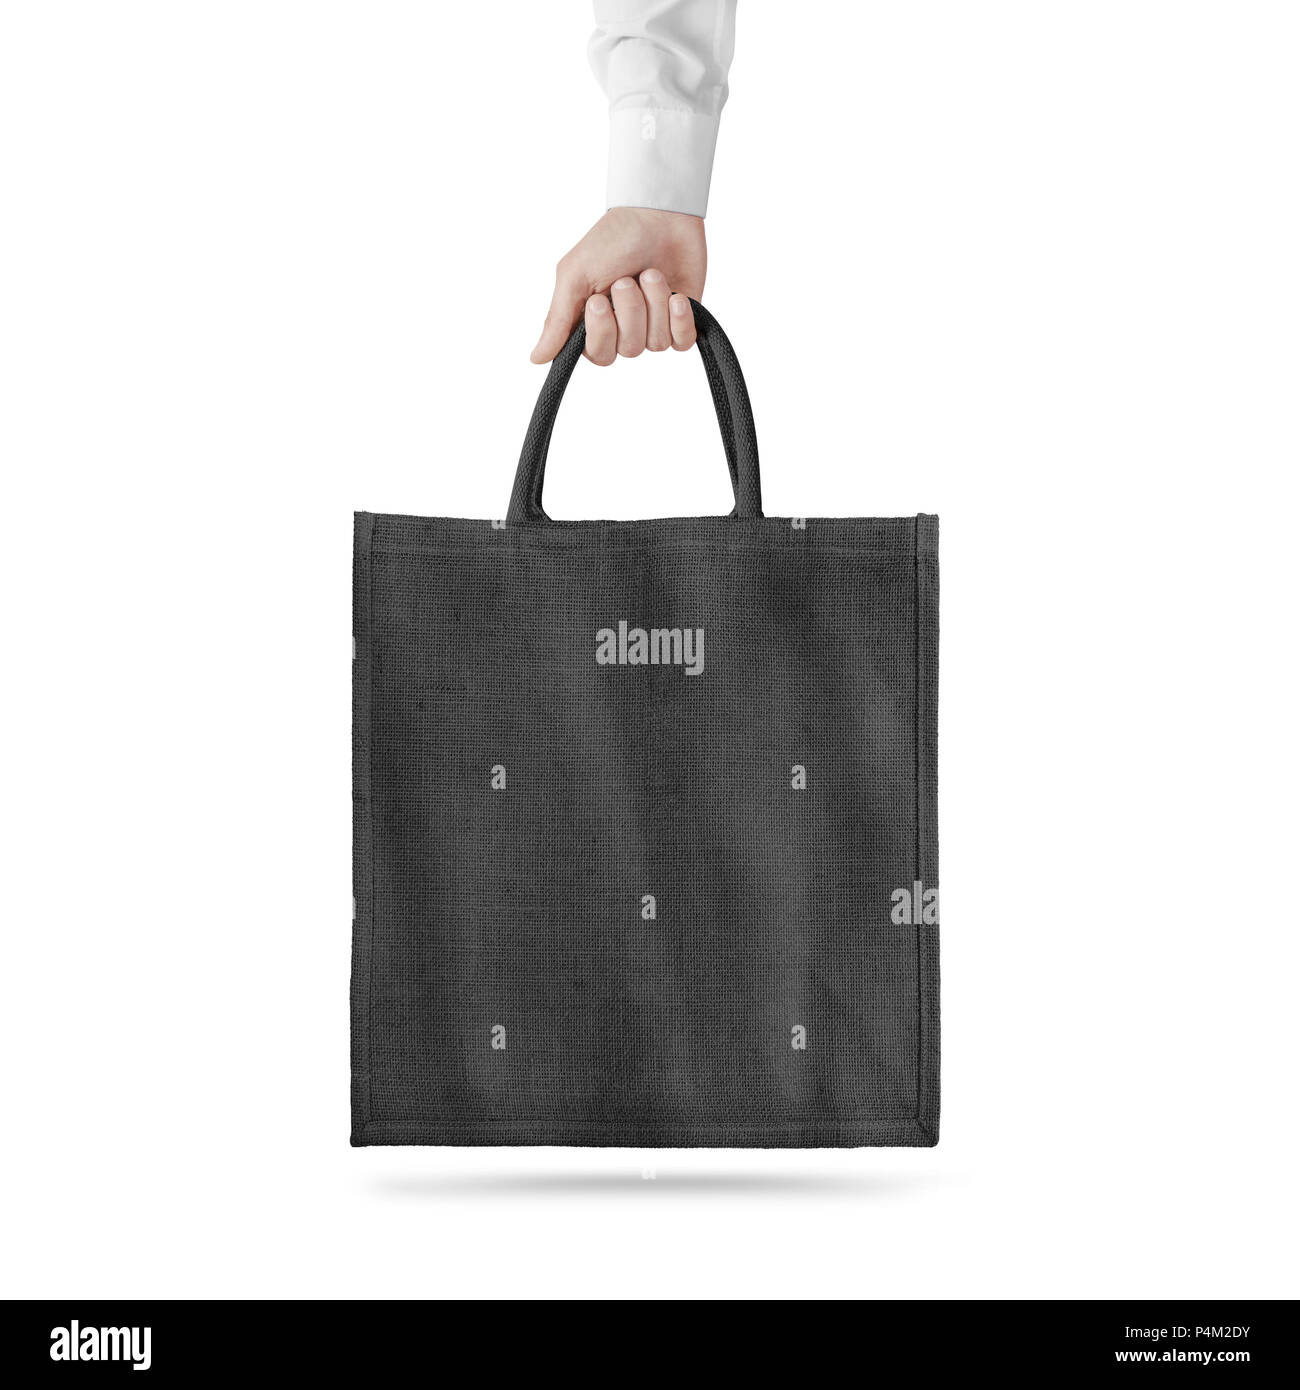 blank black cotton eco bag design mockup isolated holding hand clipping path textile cloth bag mock up template hold arm tote shoe consumer reusab